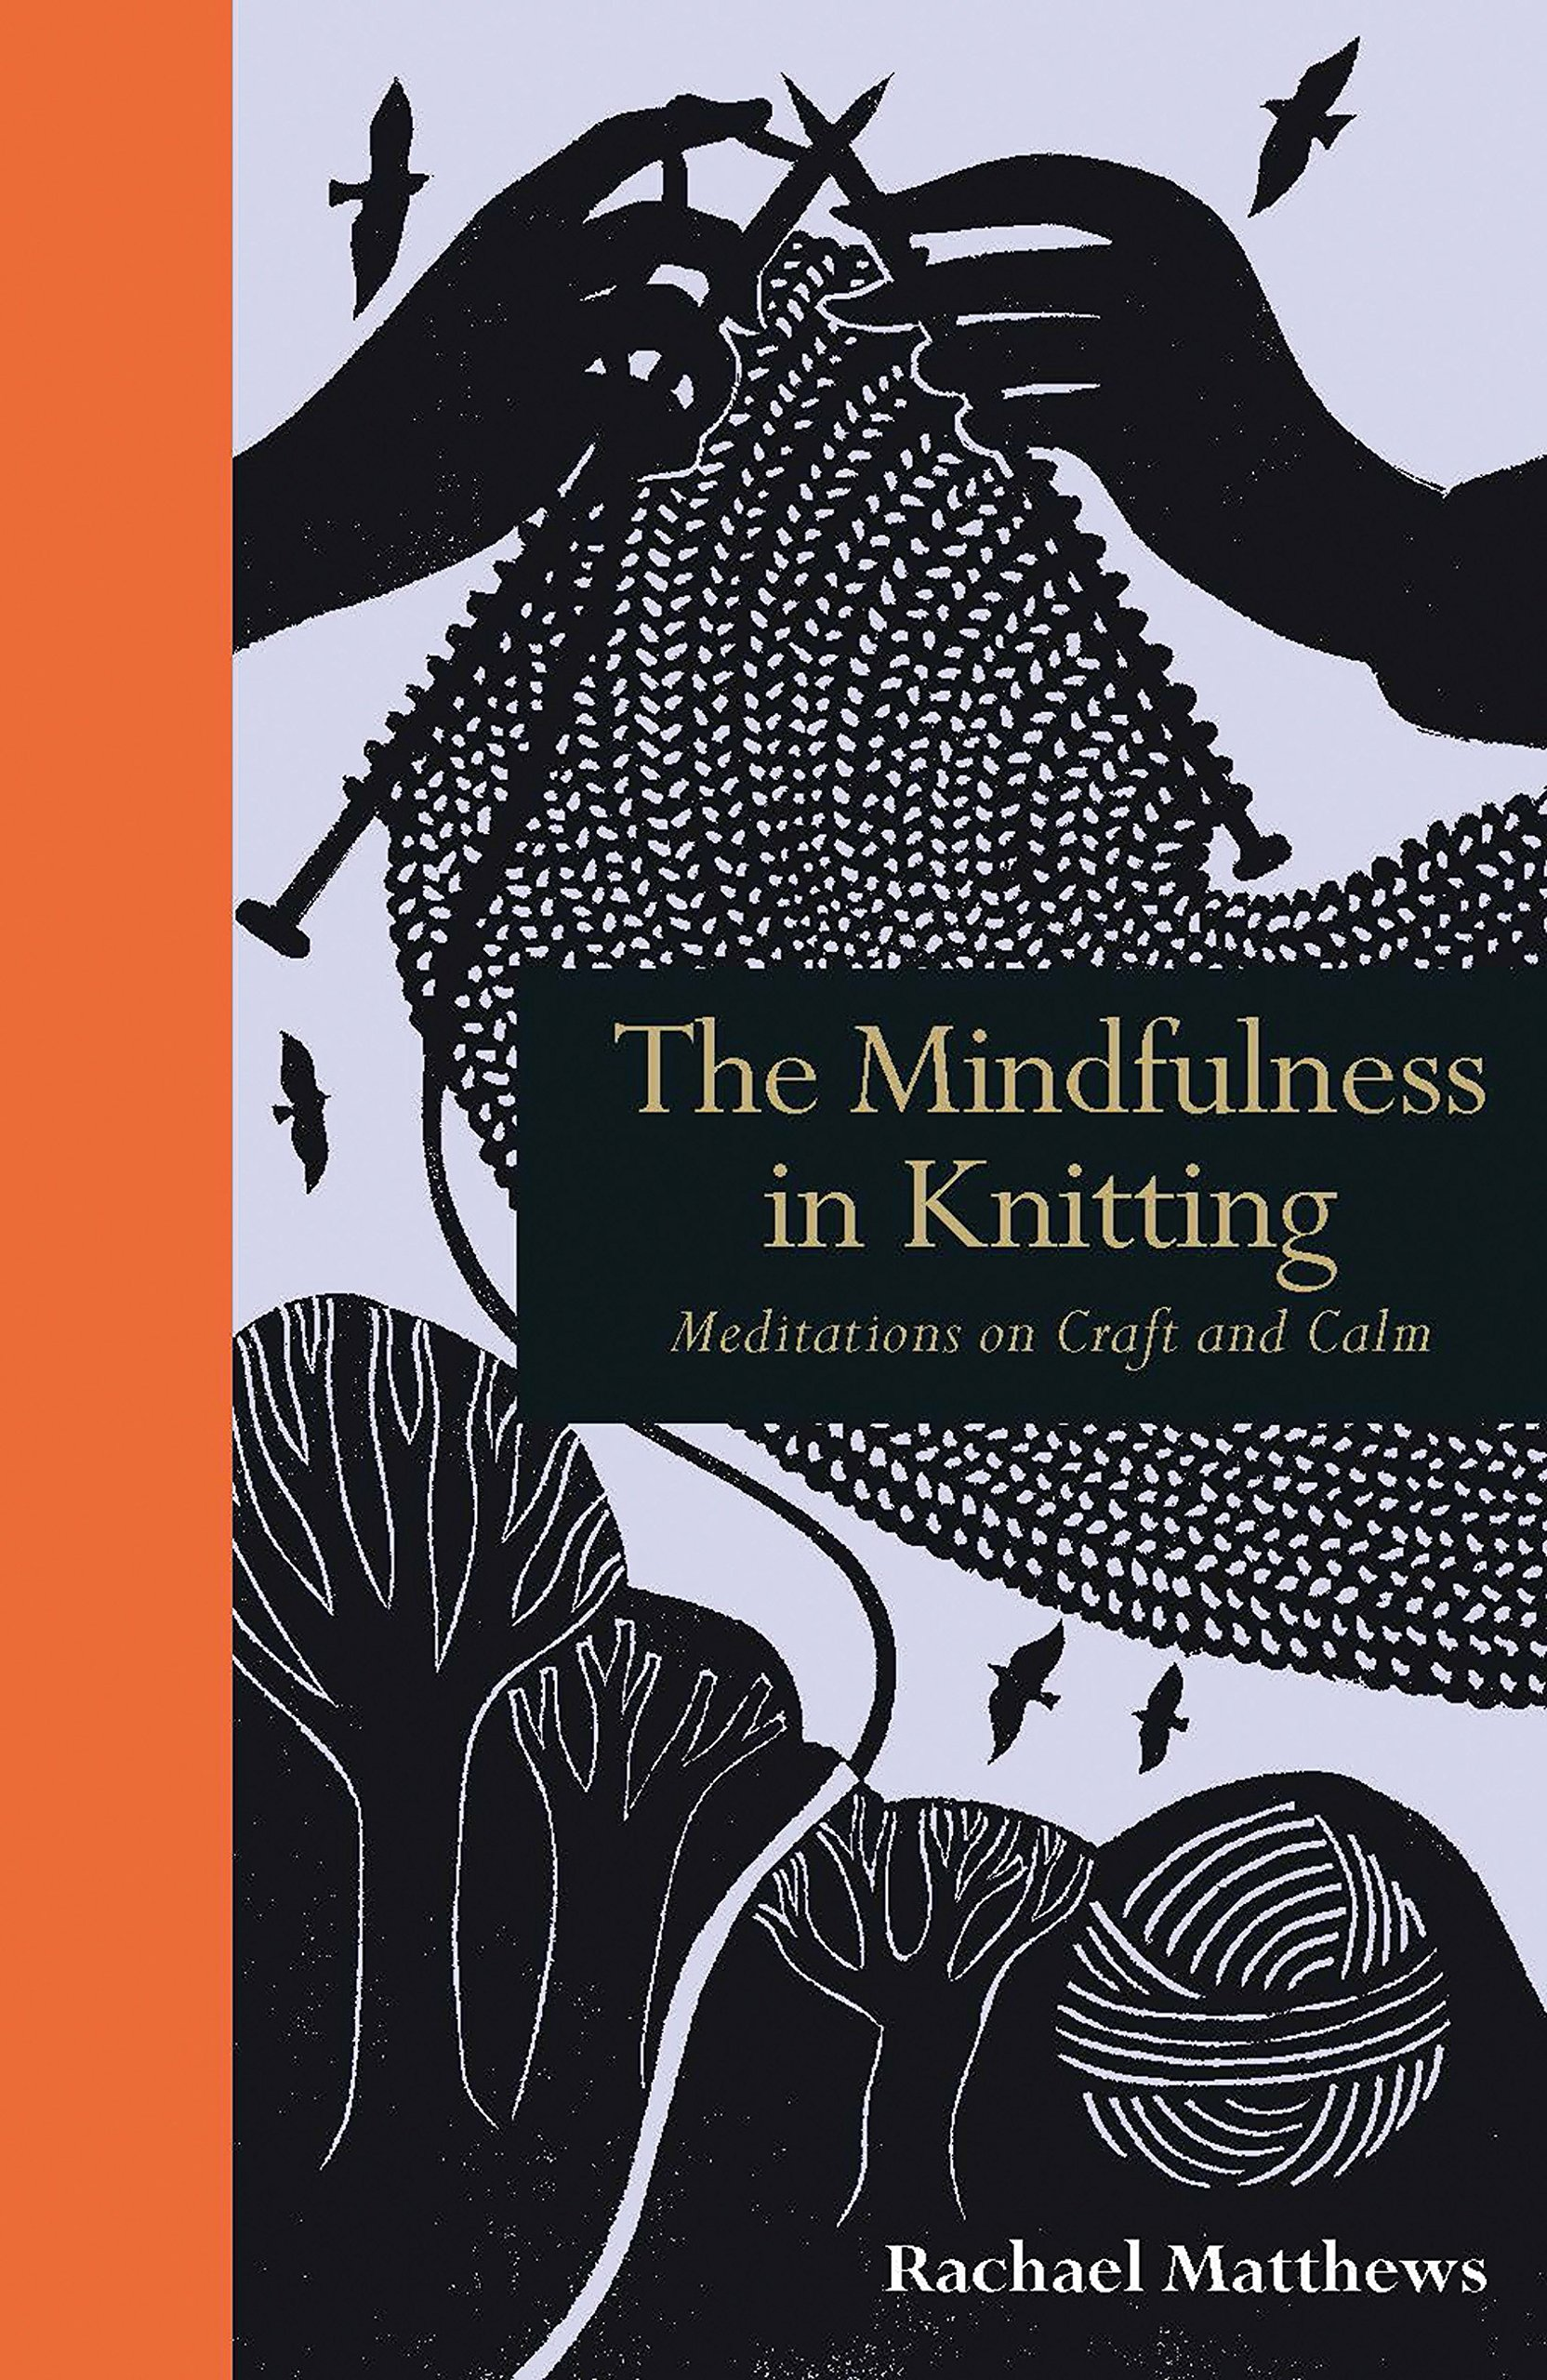 Image result for mindfulness knitting